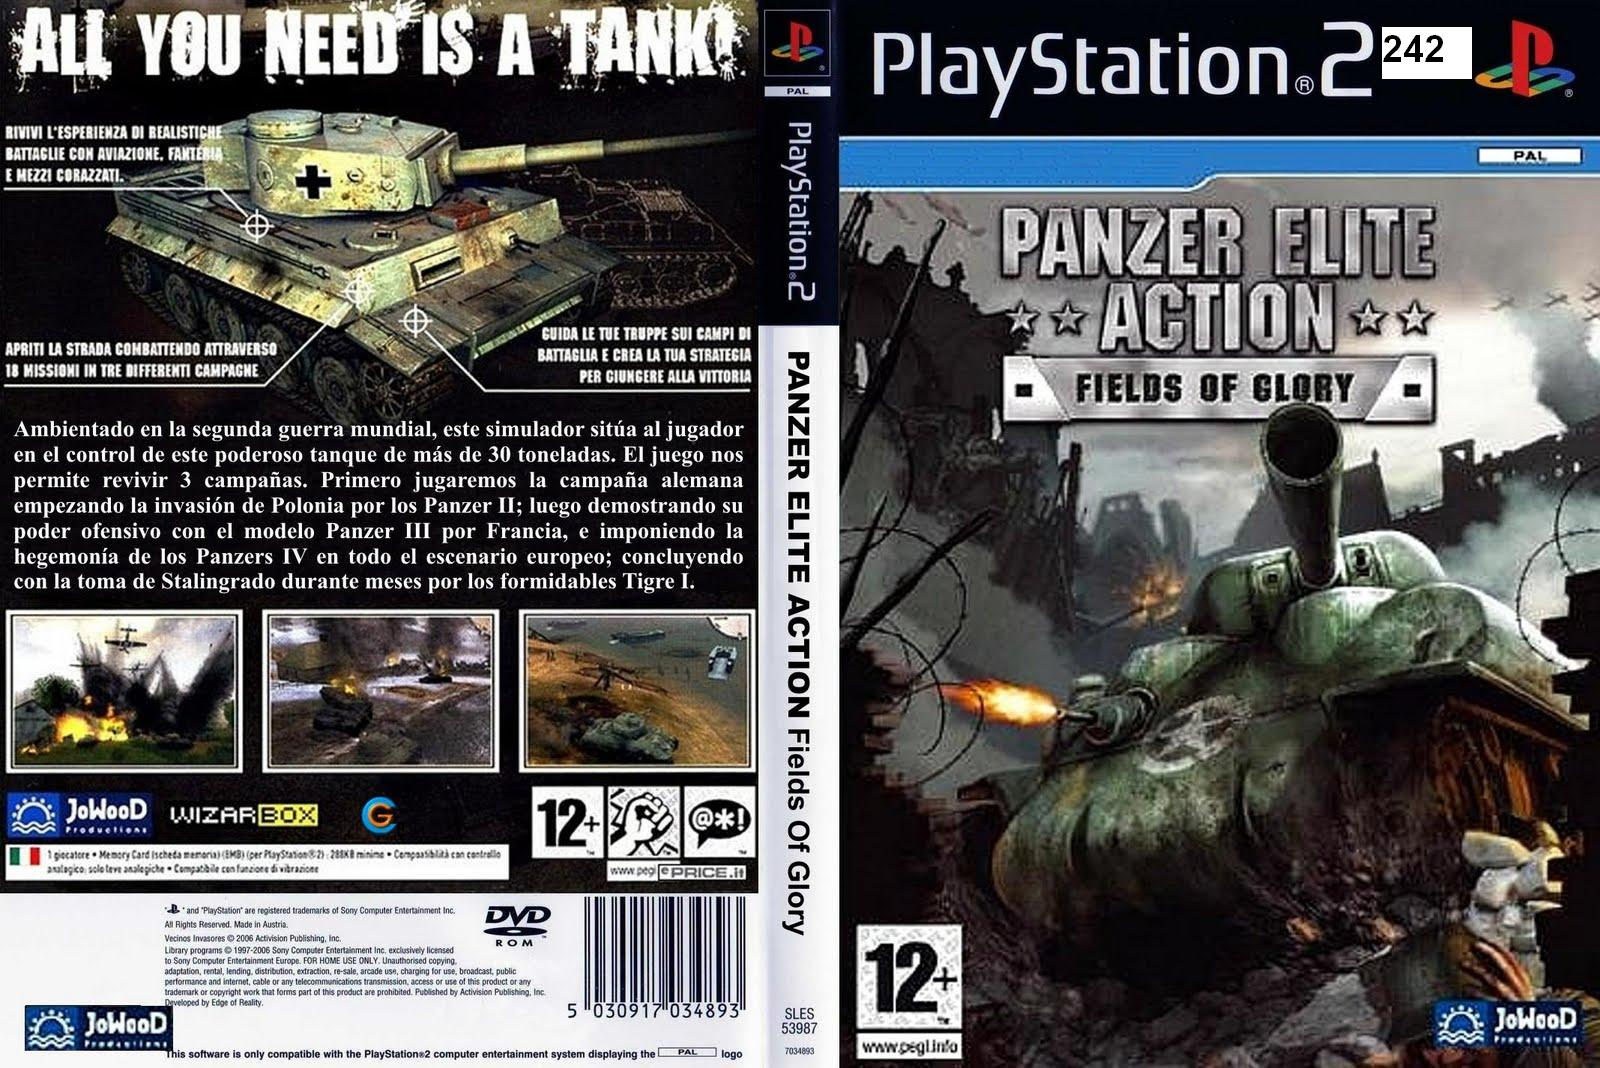 Panzer elite action fields of glory pc review